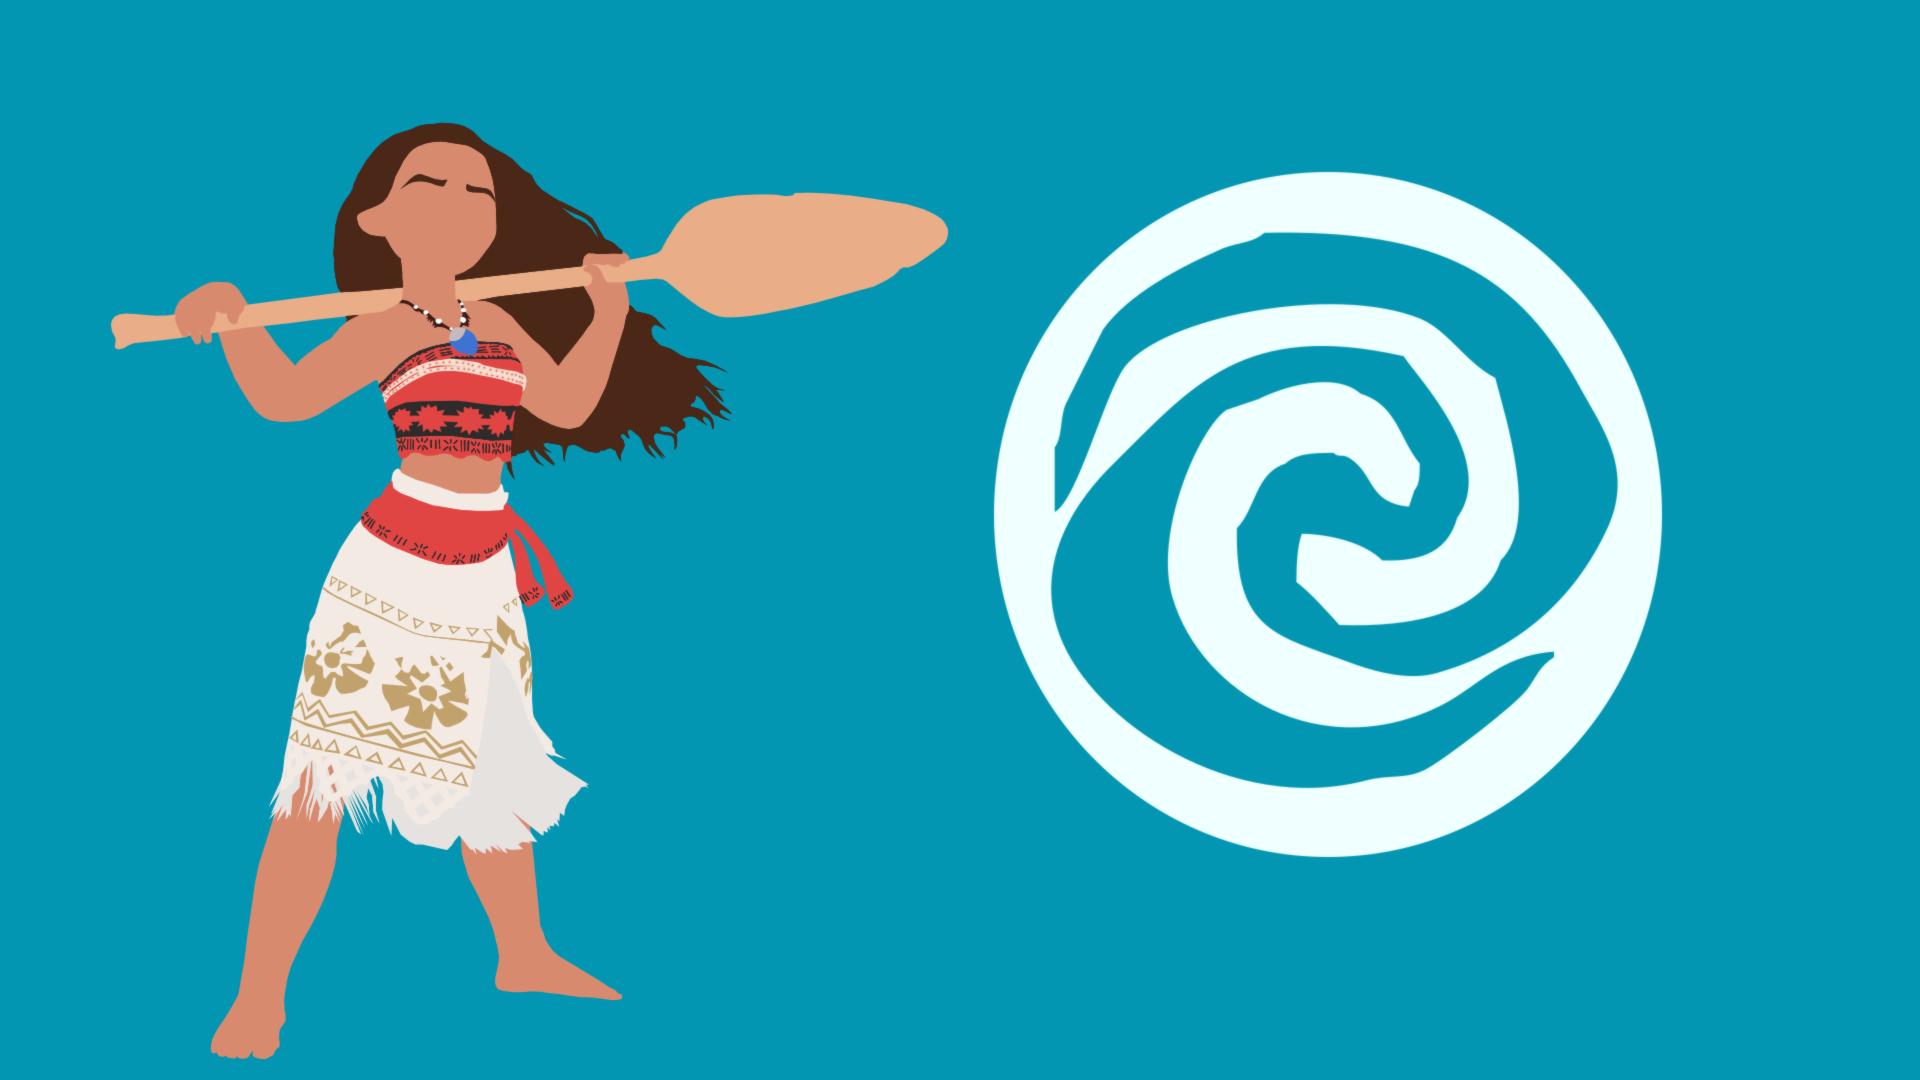 Careers clipart minimalist. Moana wallpaper by pureparadise